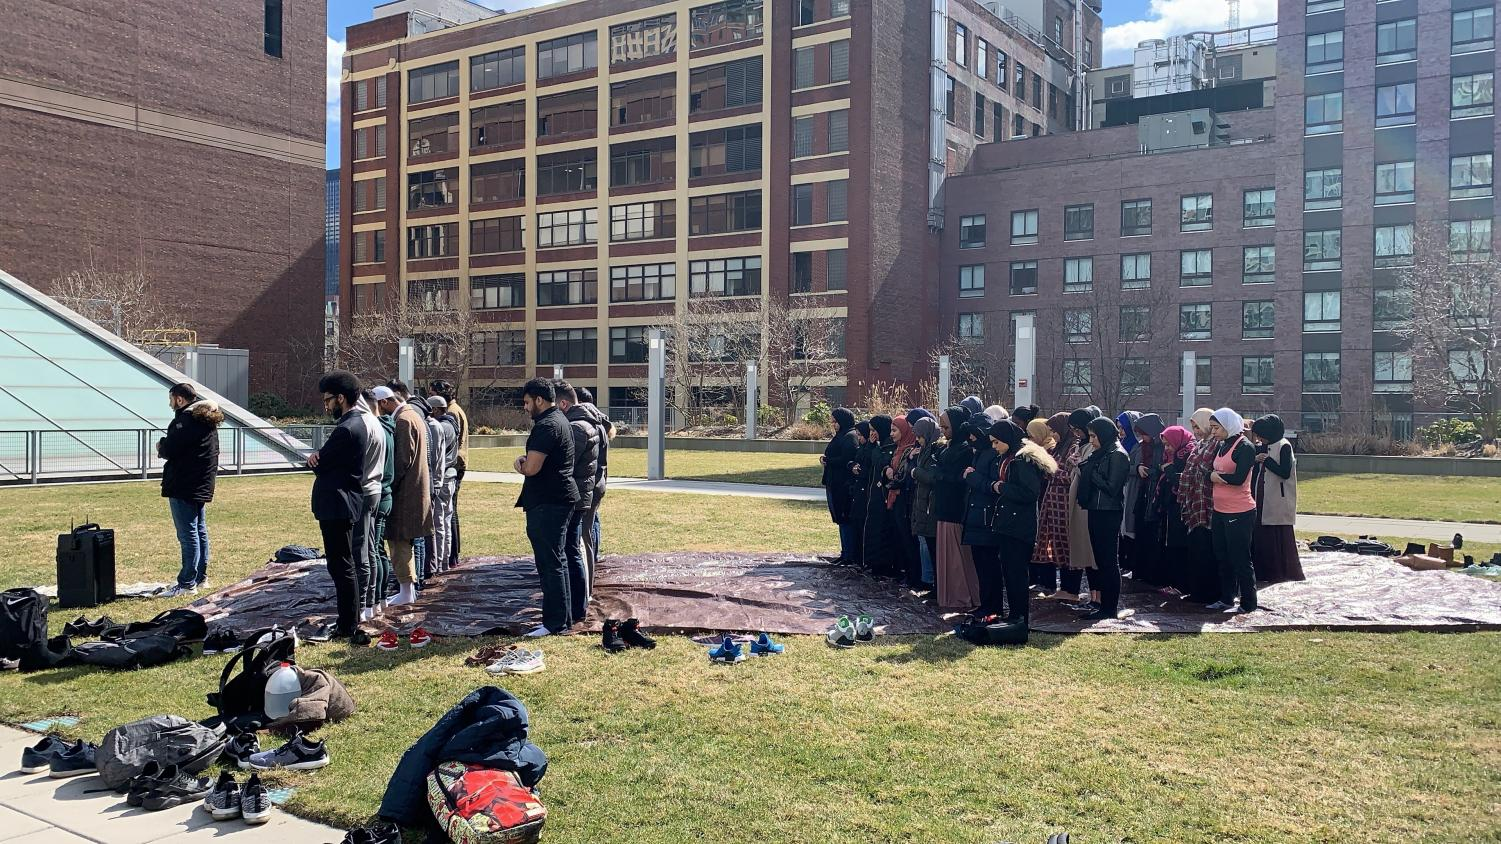 Muslim students during Dhuhr prayer, a noon prayer on the Jay Walk by Nora Abuhamdeh